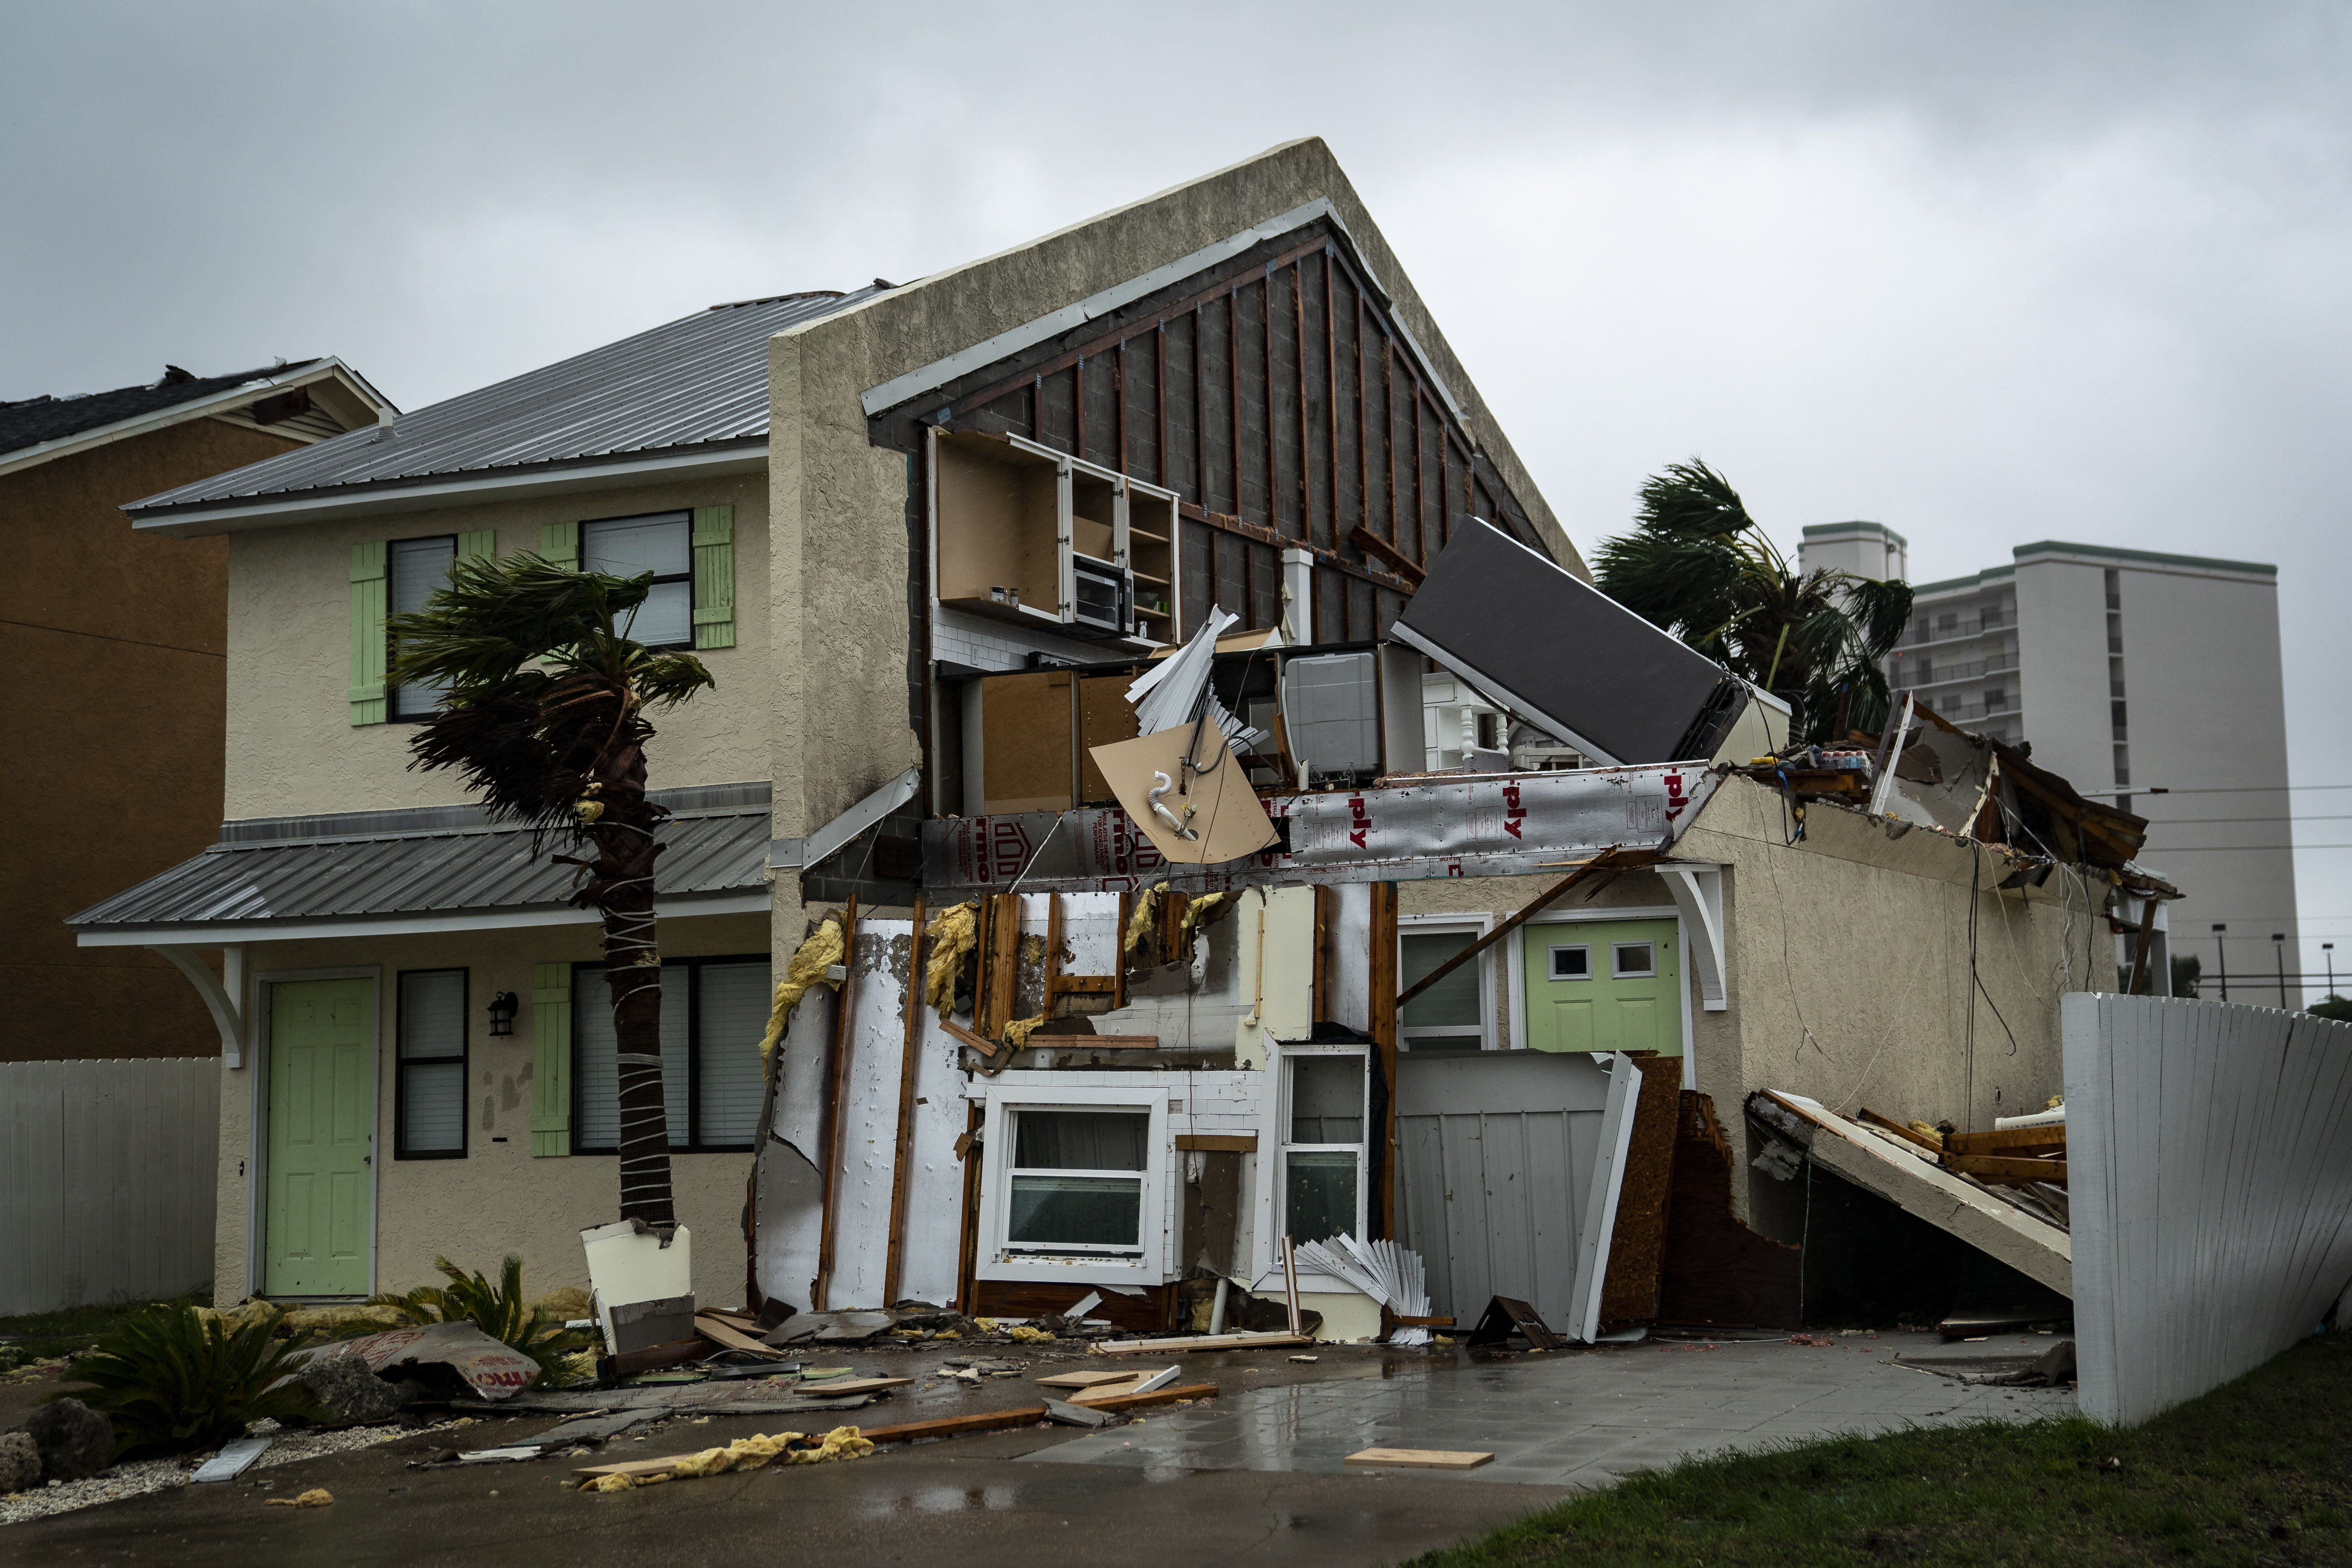 Destroyed home in Panama City, Florida